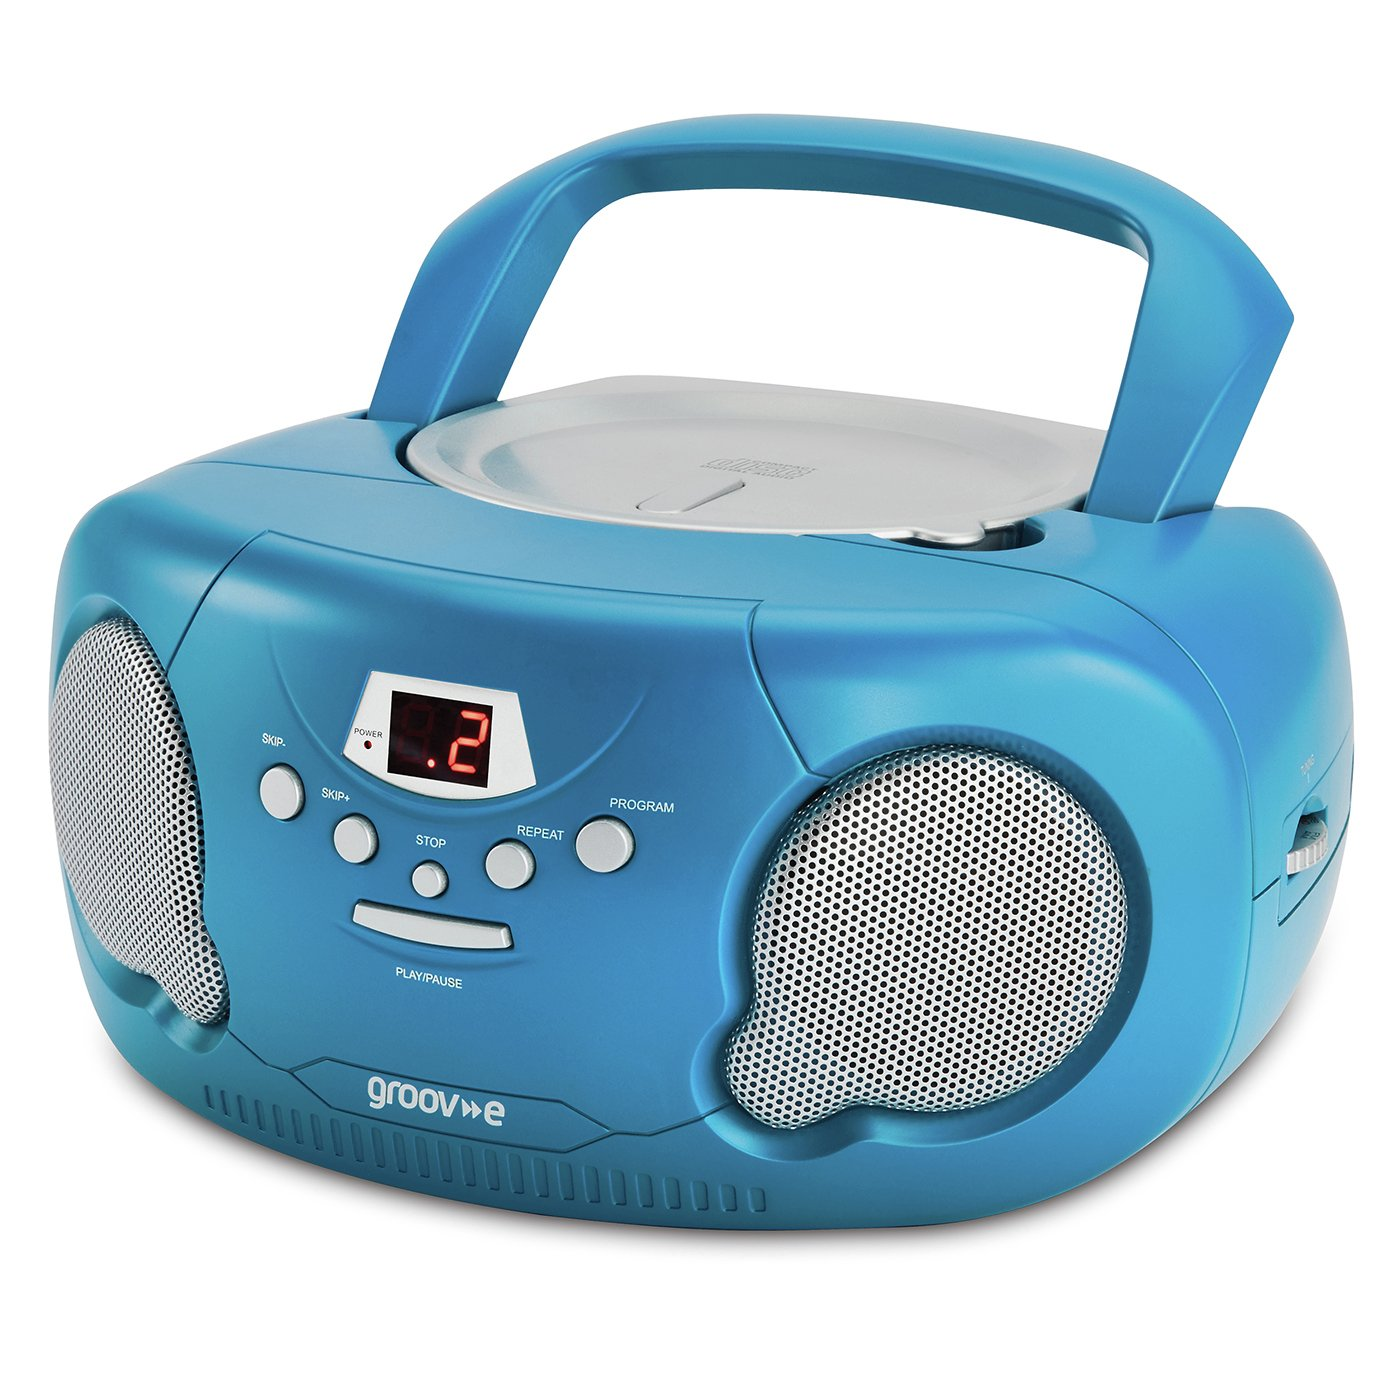 Groov-e Boombox CD Player with Radio - Blue